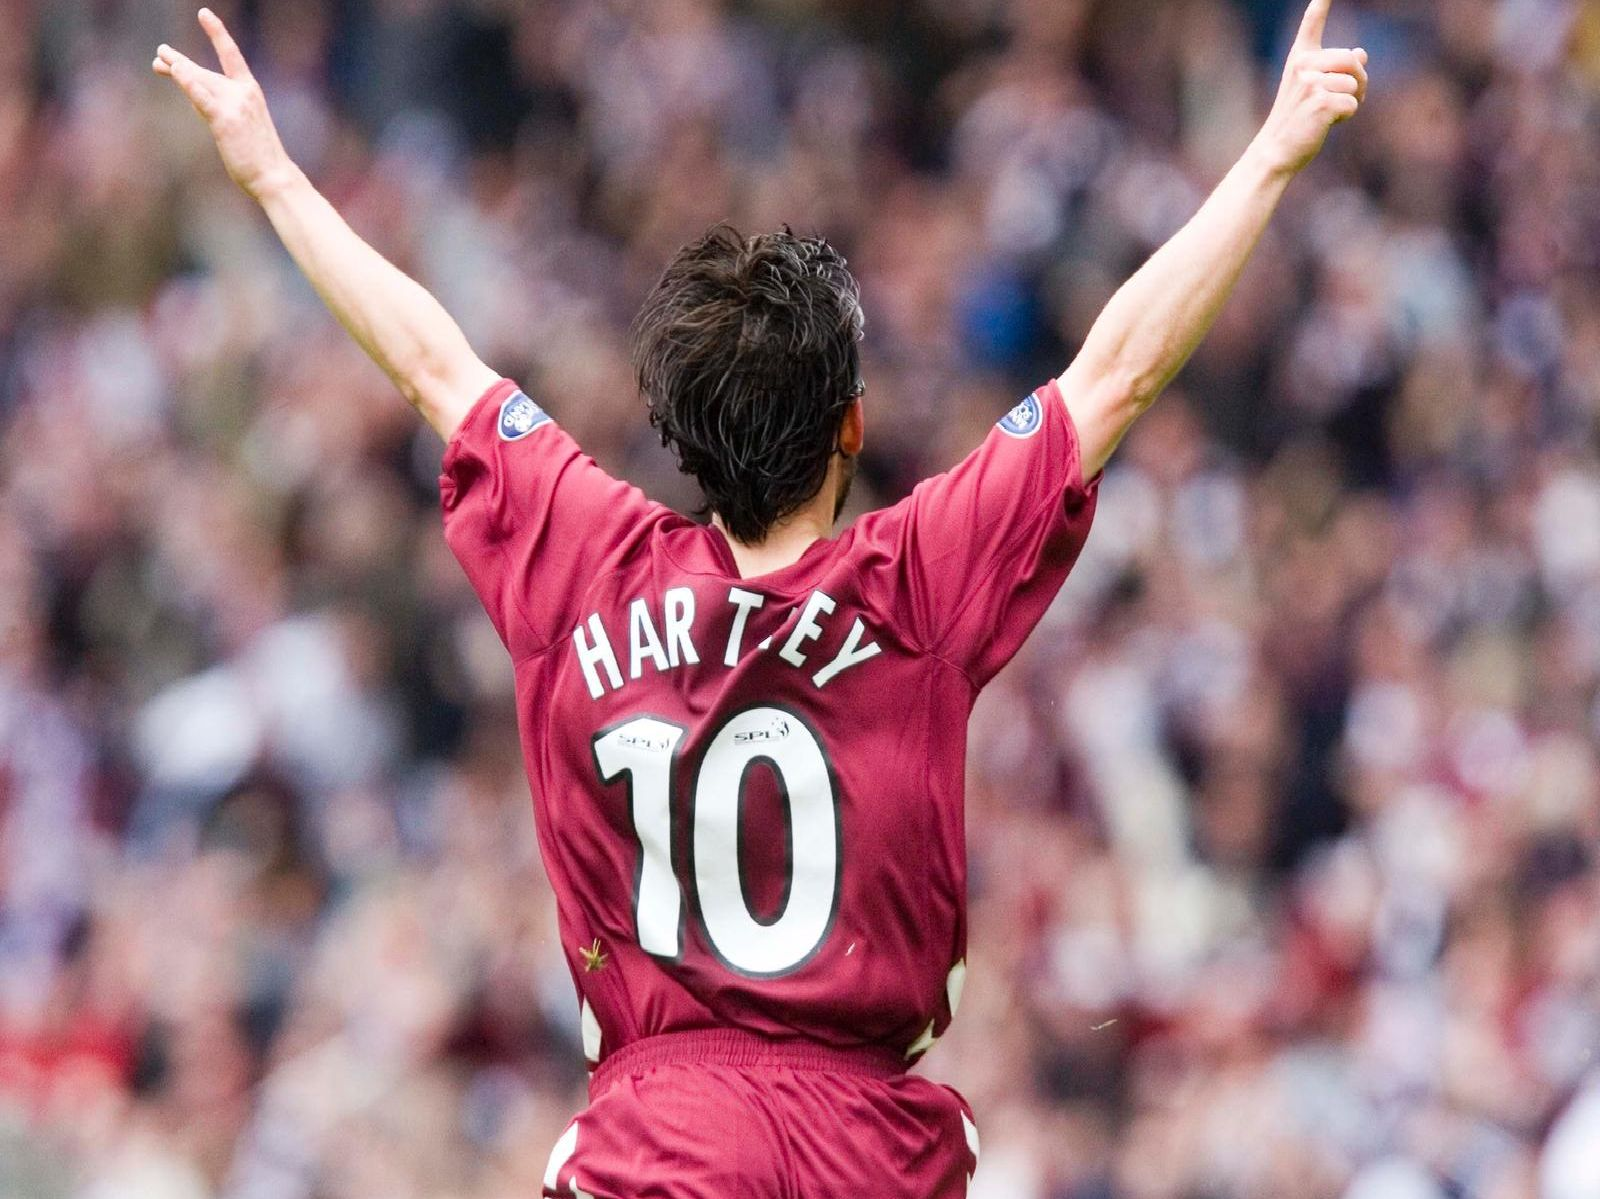 Since the 2005/06 season no Hearts player has scored more goals against Hibs than Paul Hartley